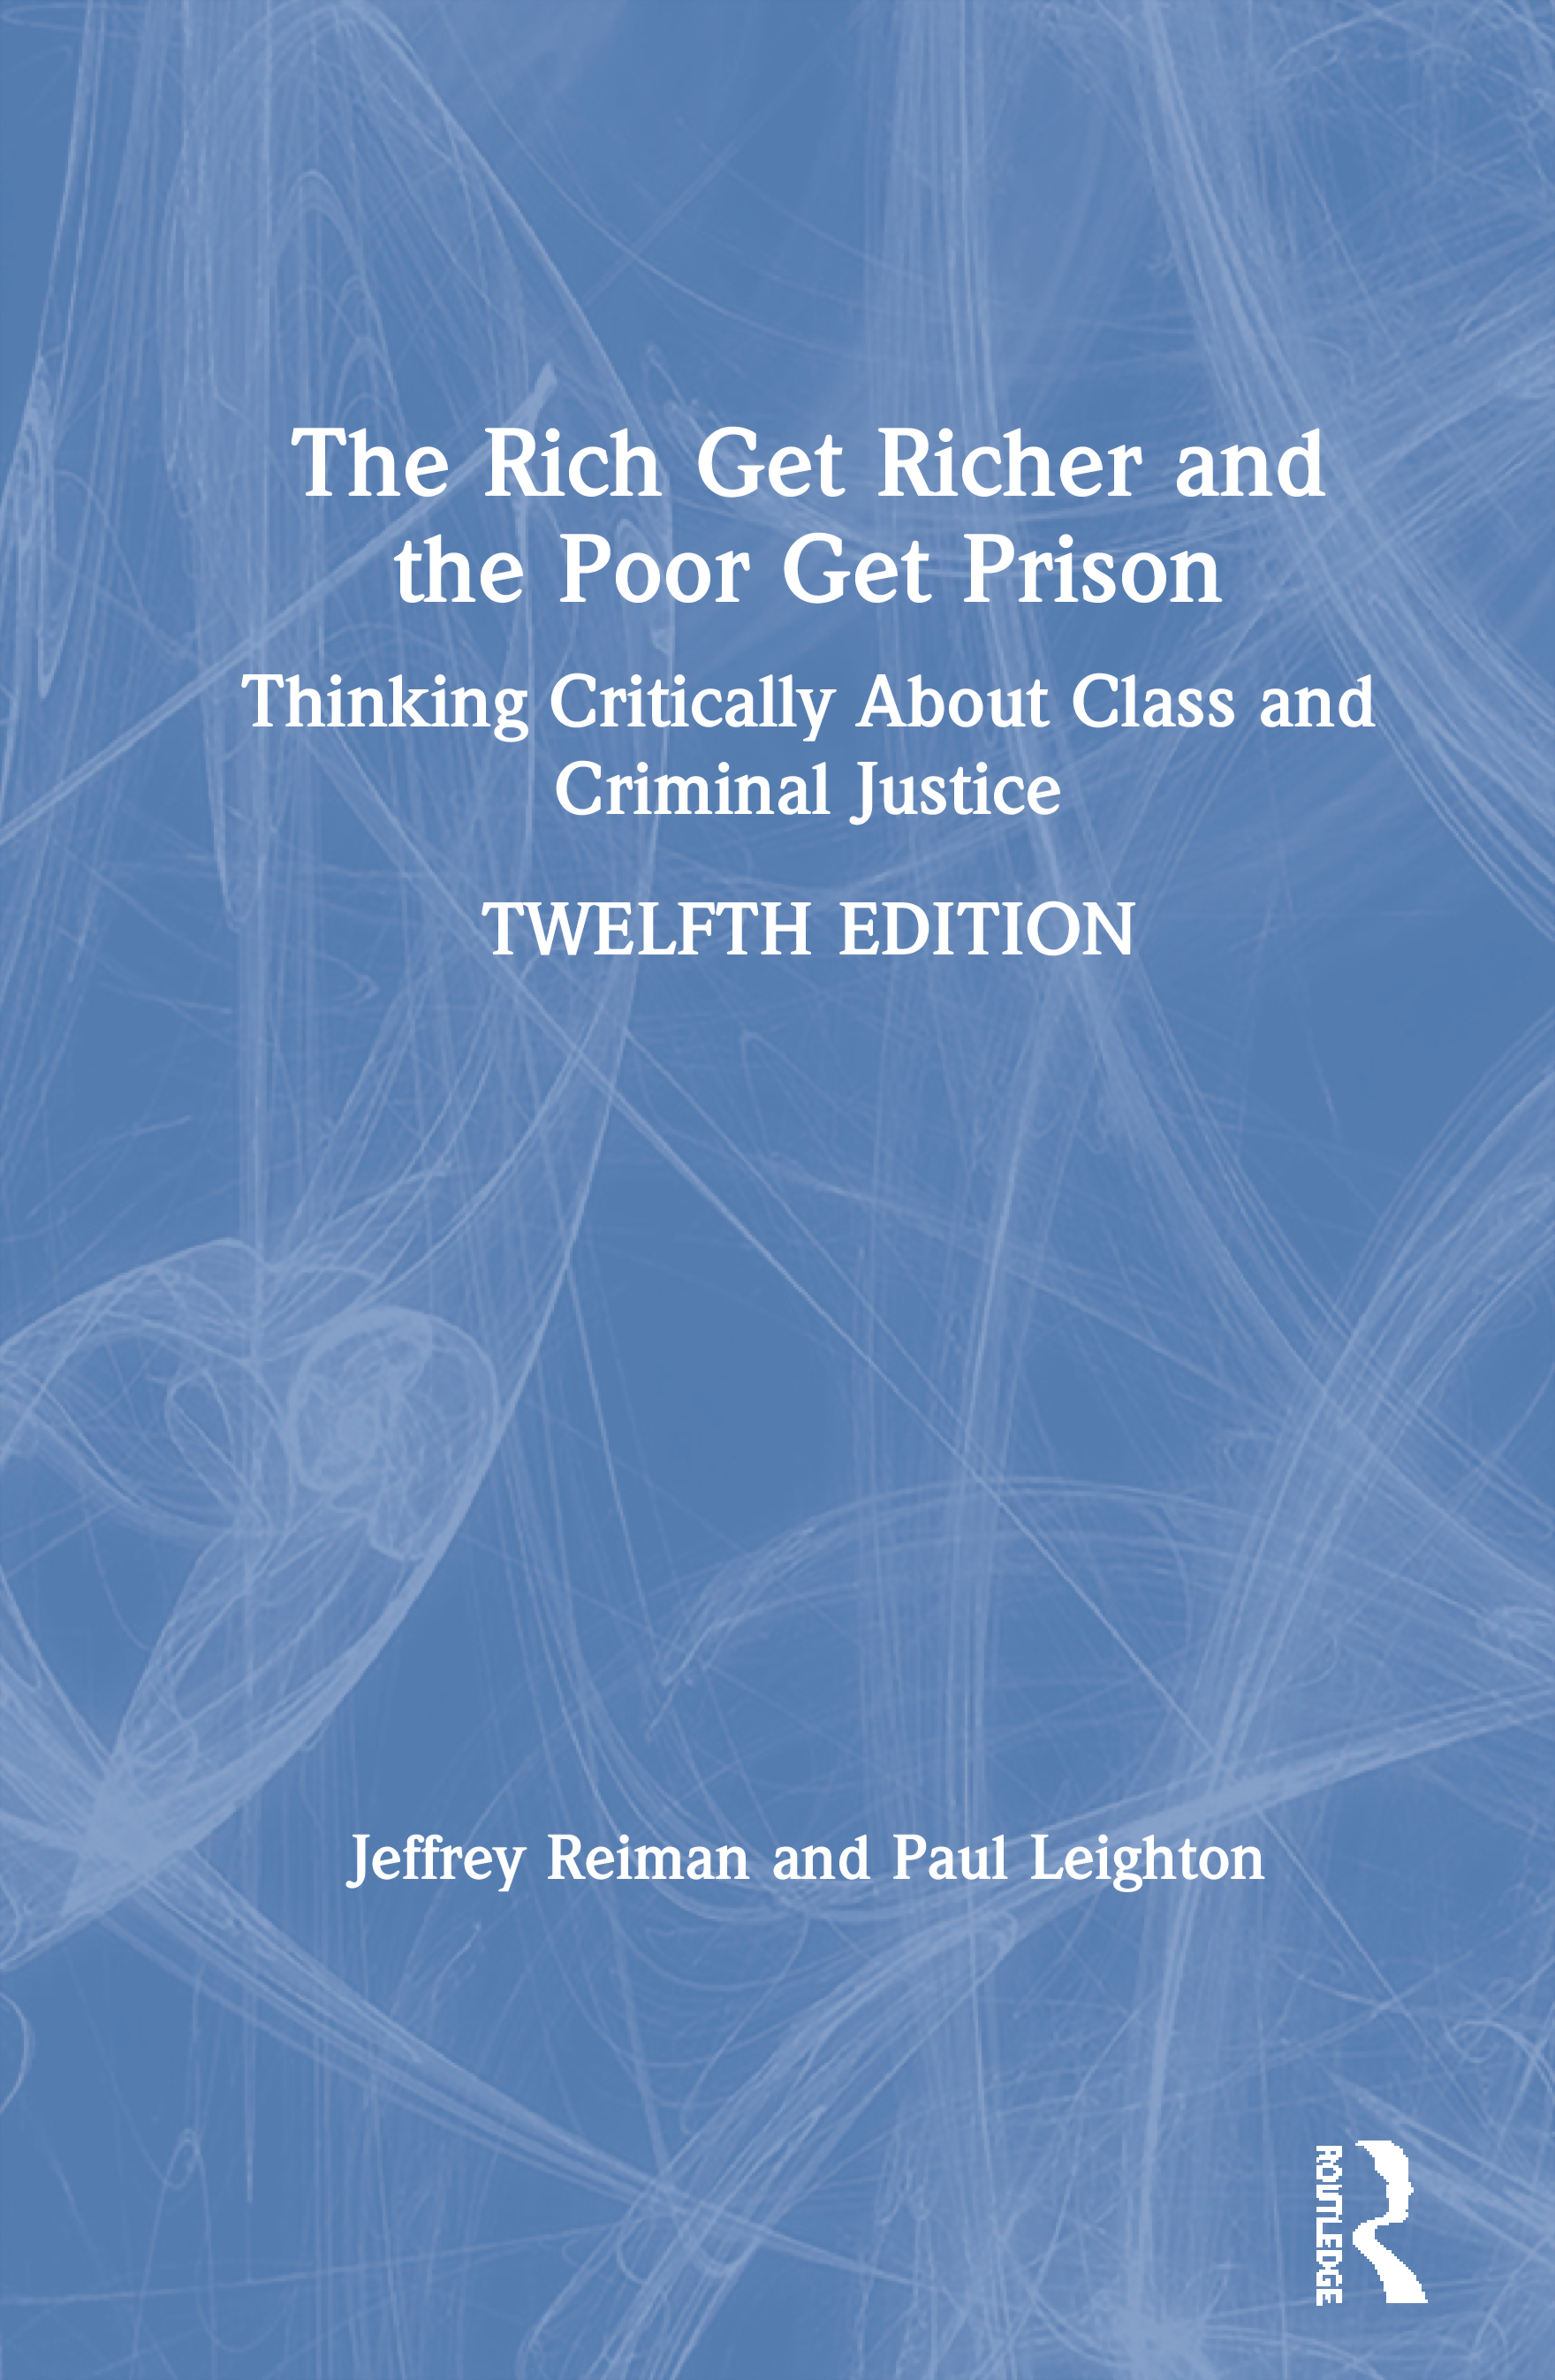 The Rich Get Richer and the Poor Get Prison: Thinking Critically About Class and Criminal Justice, 12th Edition (Paperback) book cover